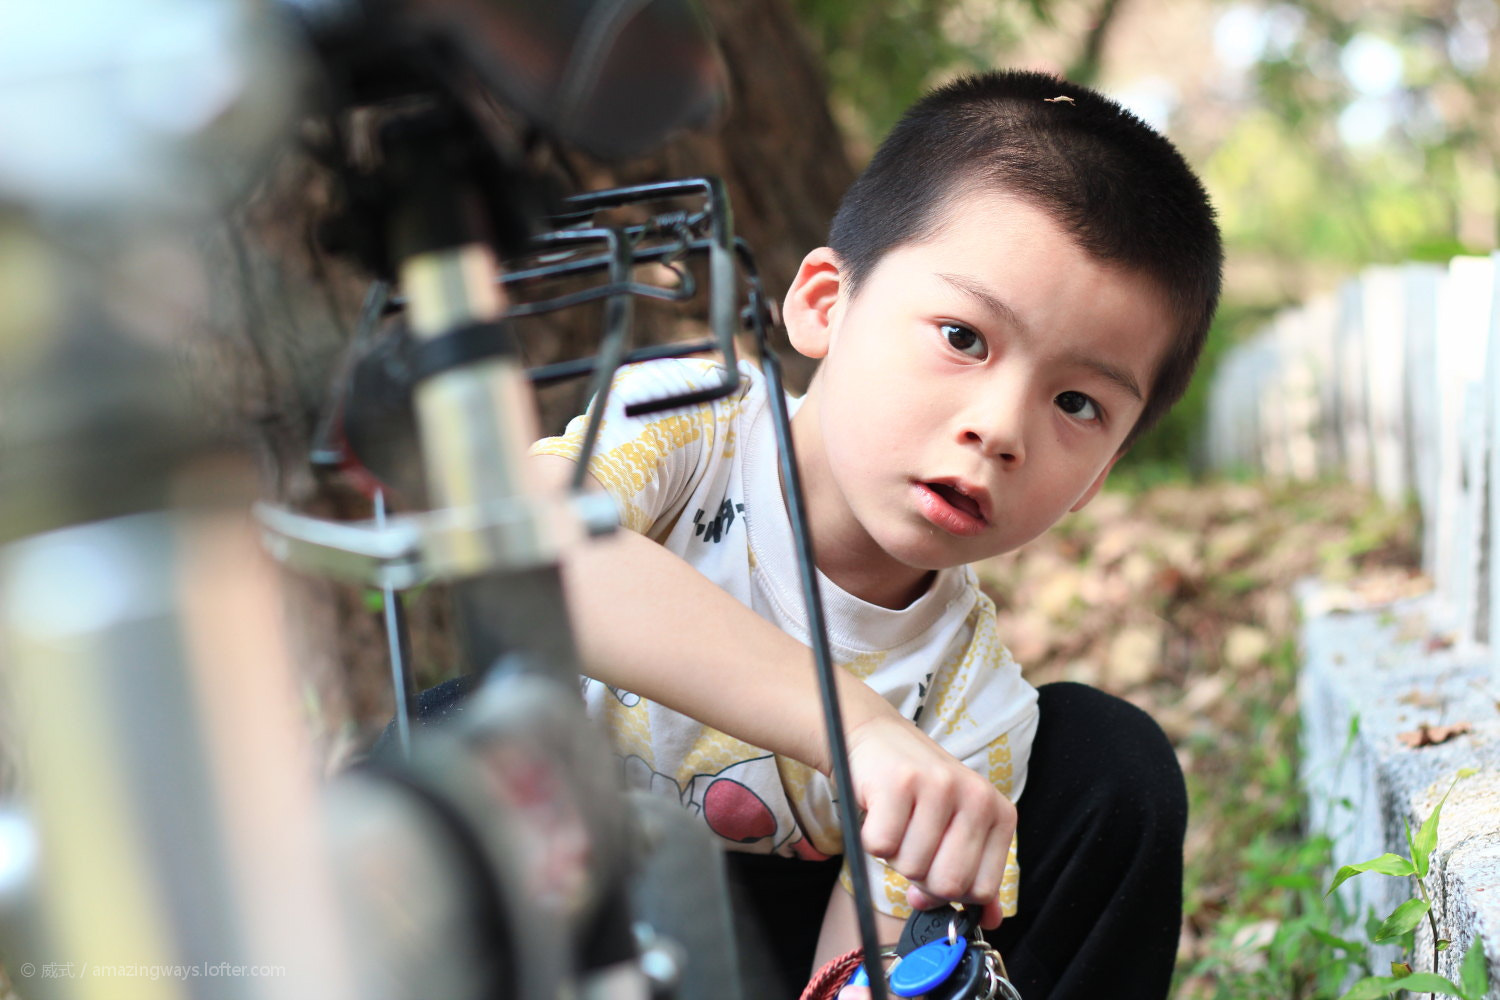 Photograph  How curious can one guy be?#March 09# Kid handle ... by William C. on 500px